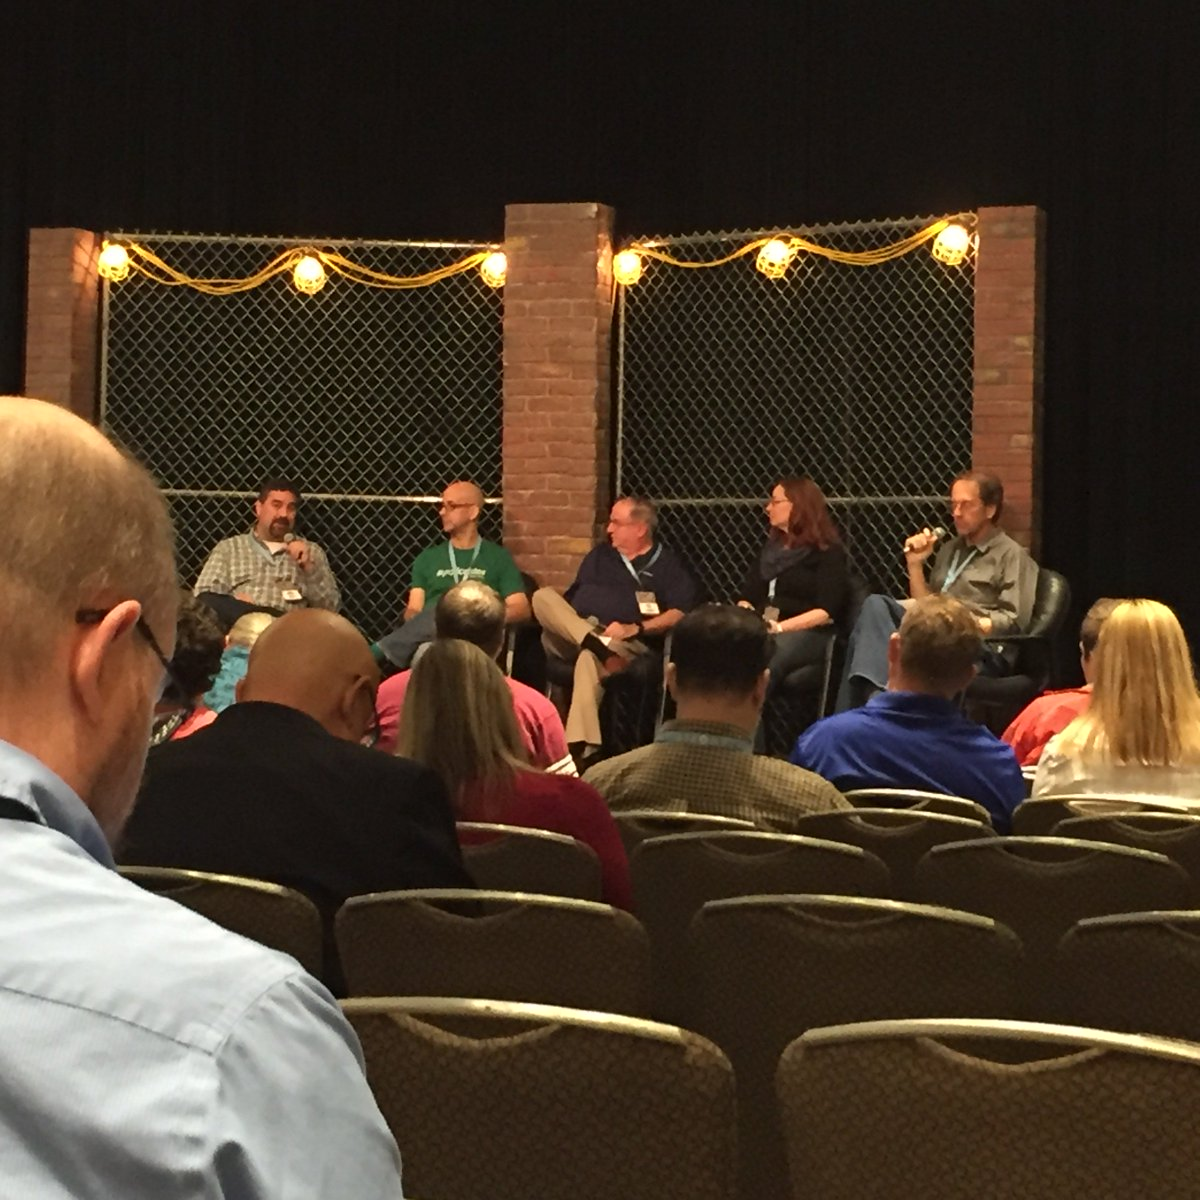 State of Podcasting panel with @podcast411 from @libsyn, Rob from @spreaker, @blubrry etc #pm16 https://t.co/Nx42wl7qyP